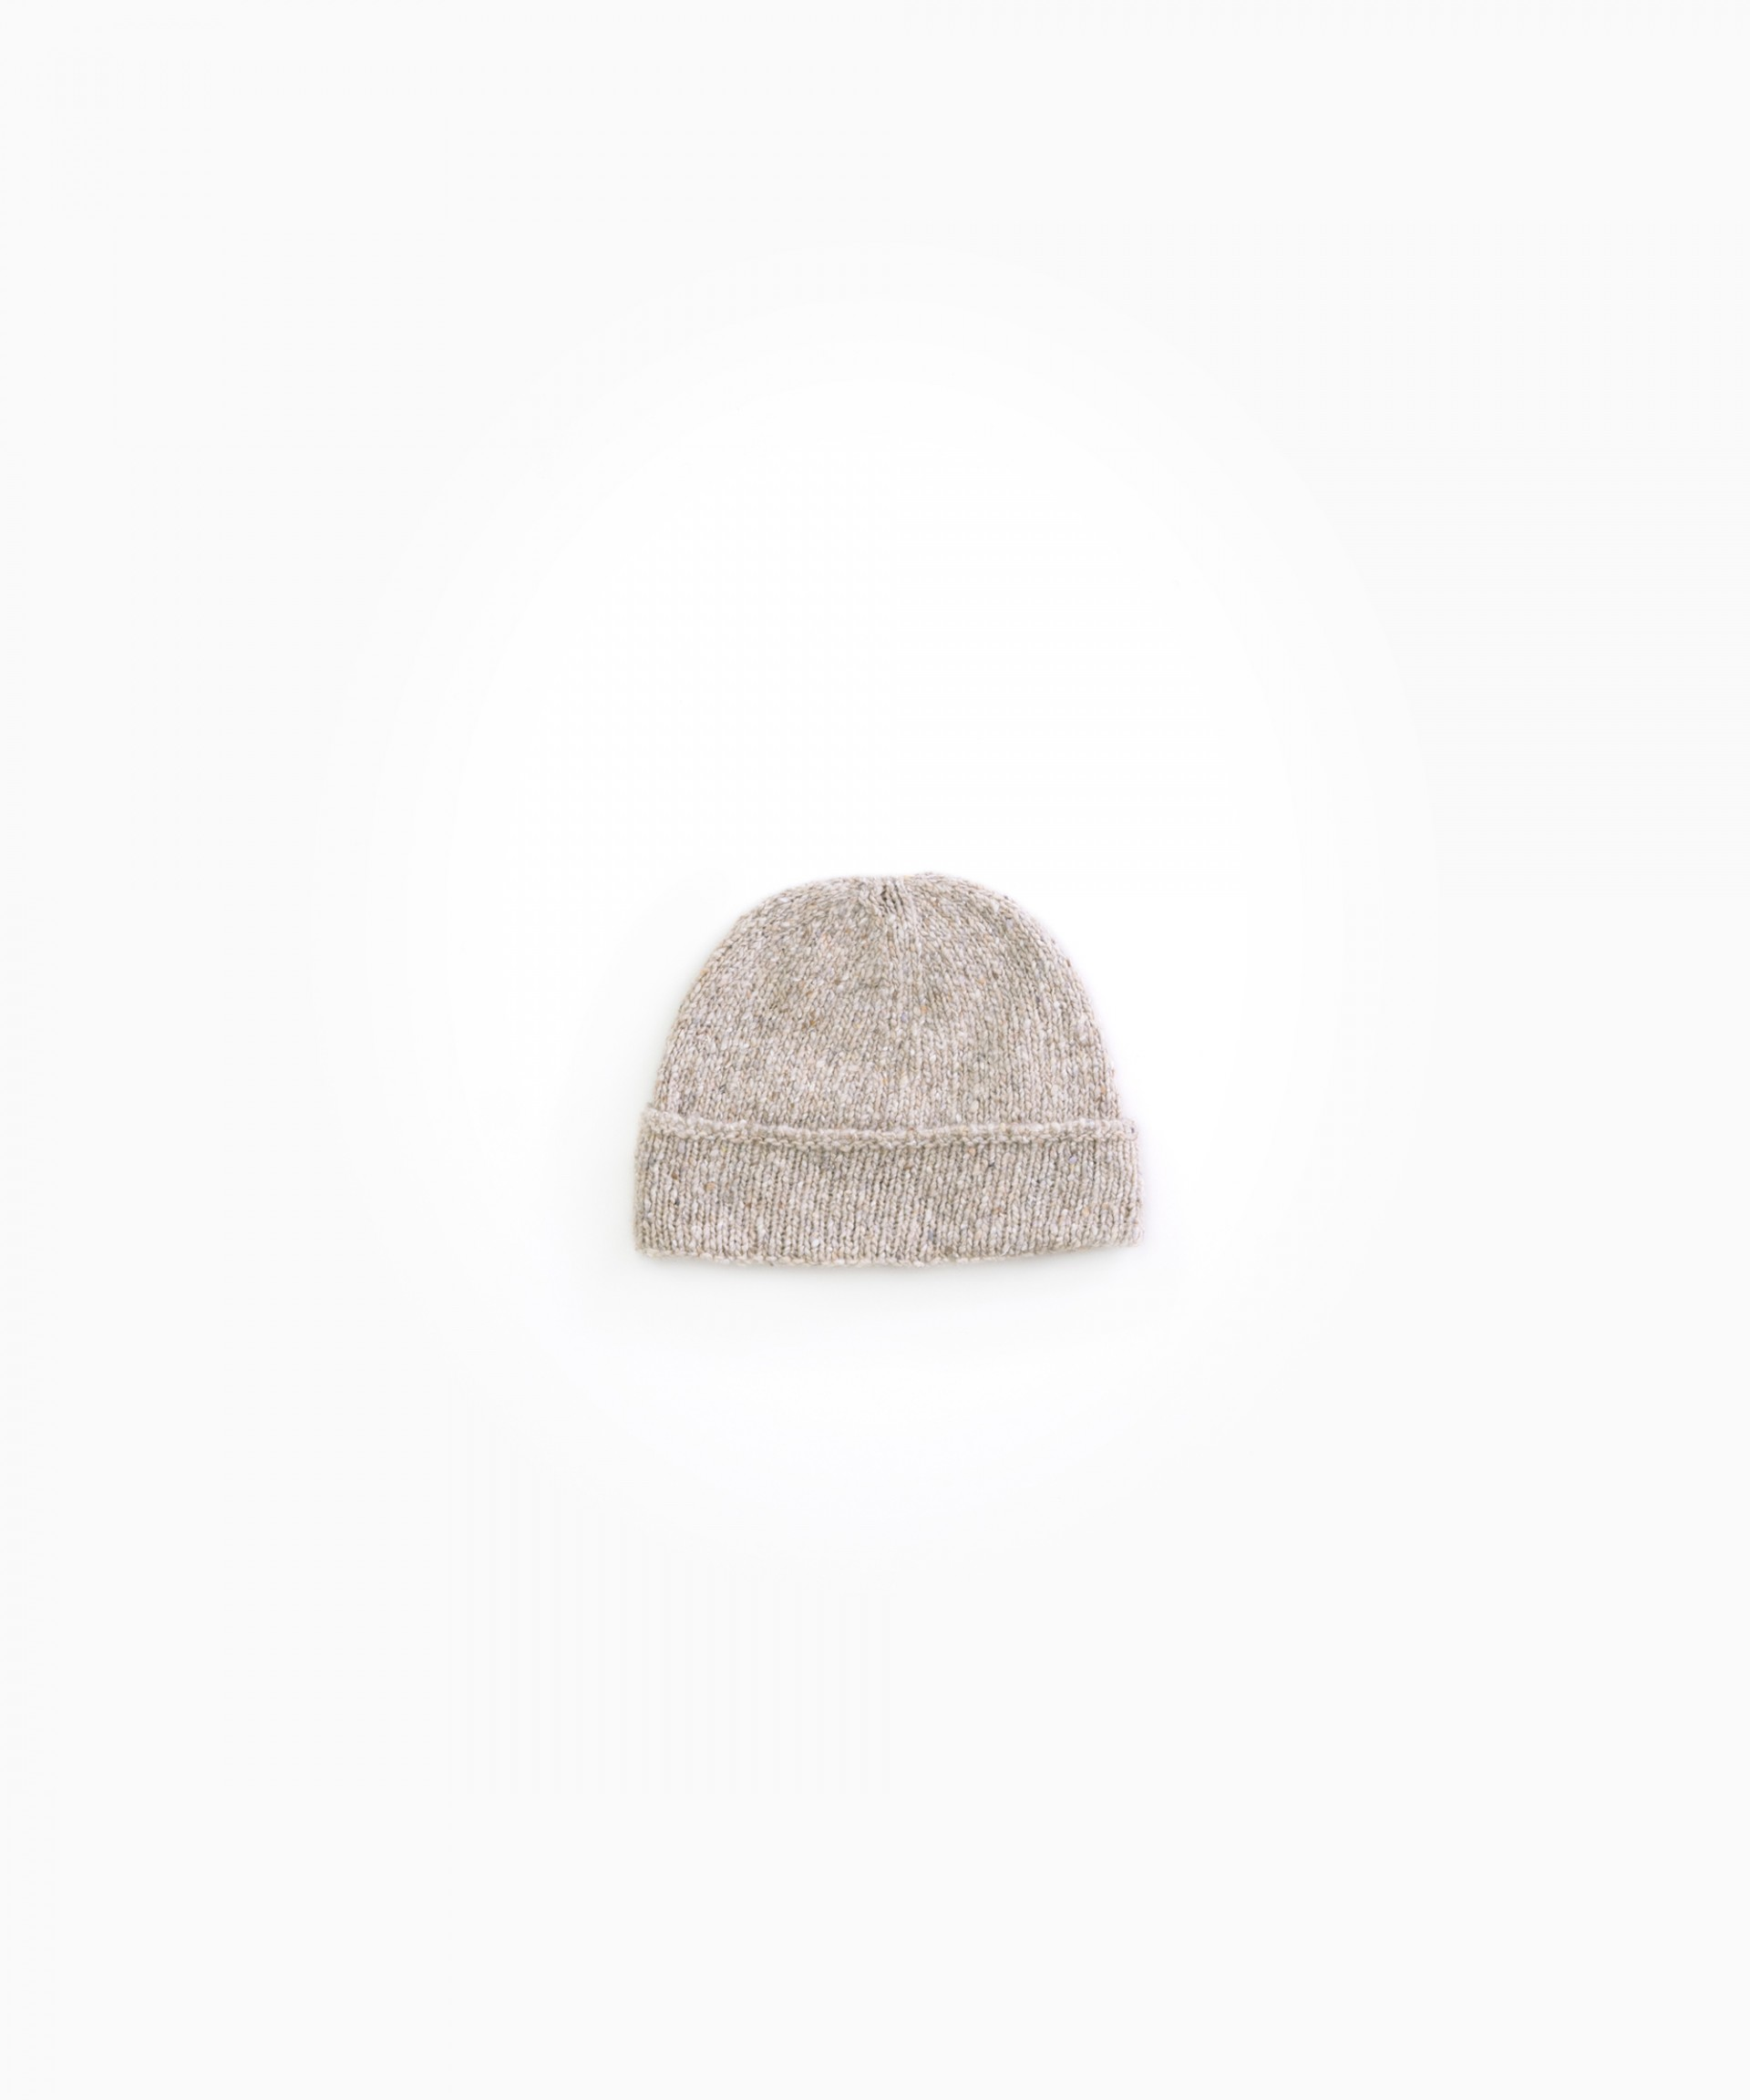 Knitted bonnet with recycled fibres | Woodwork